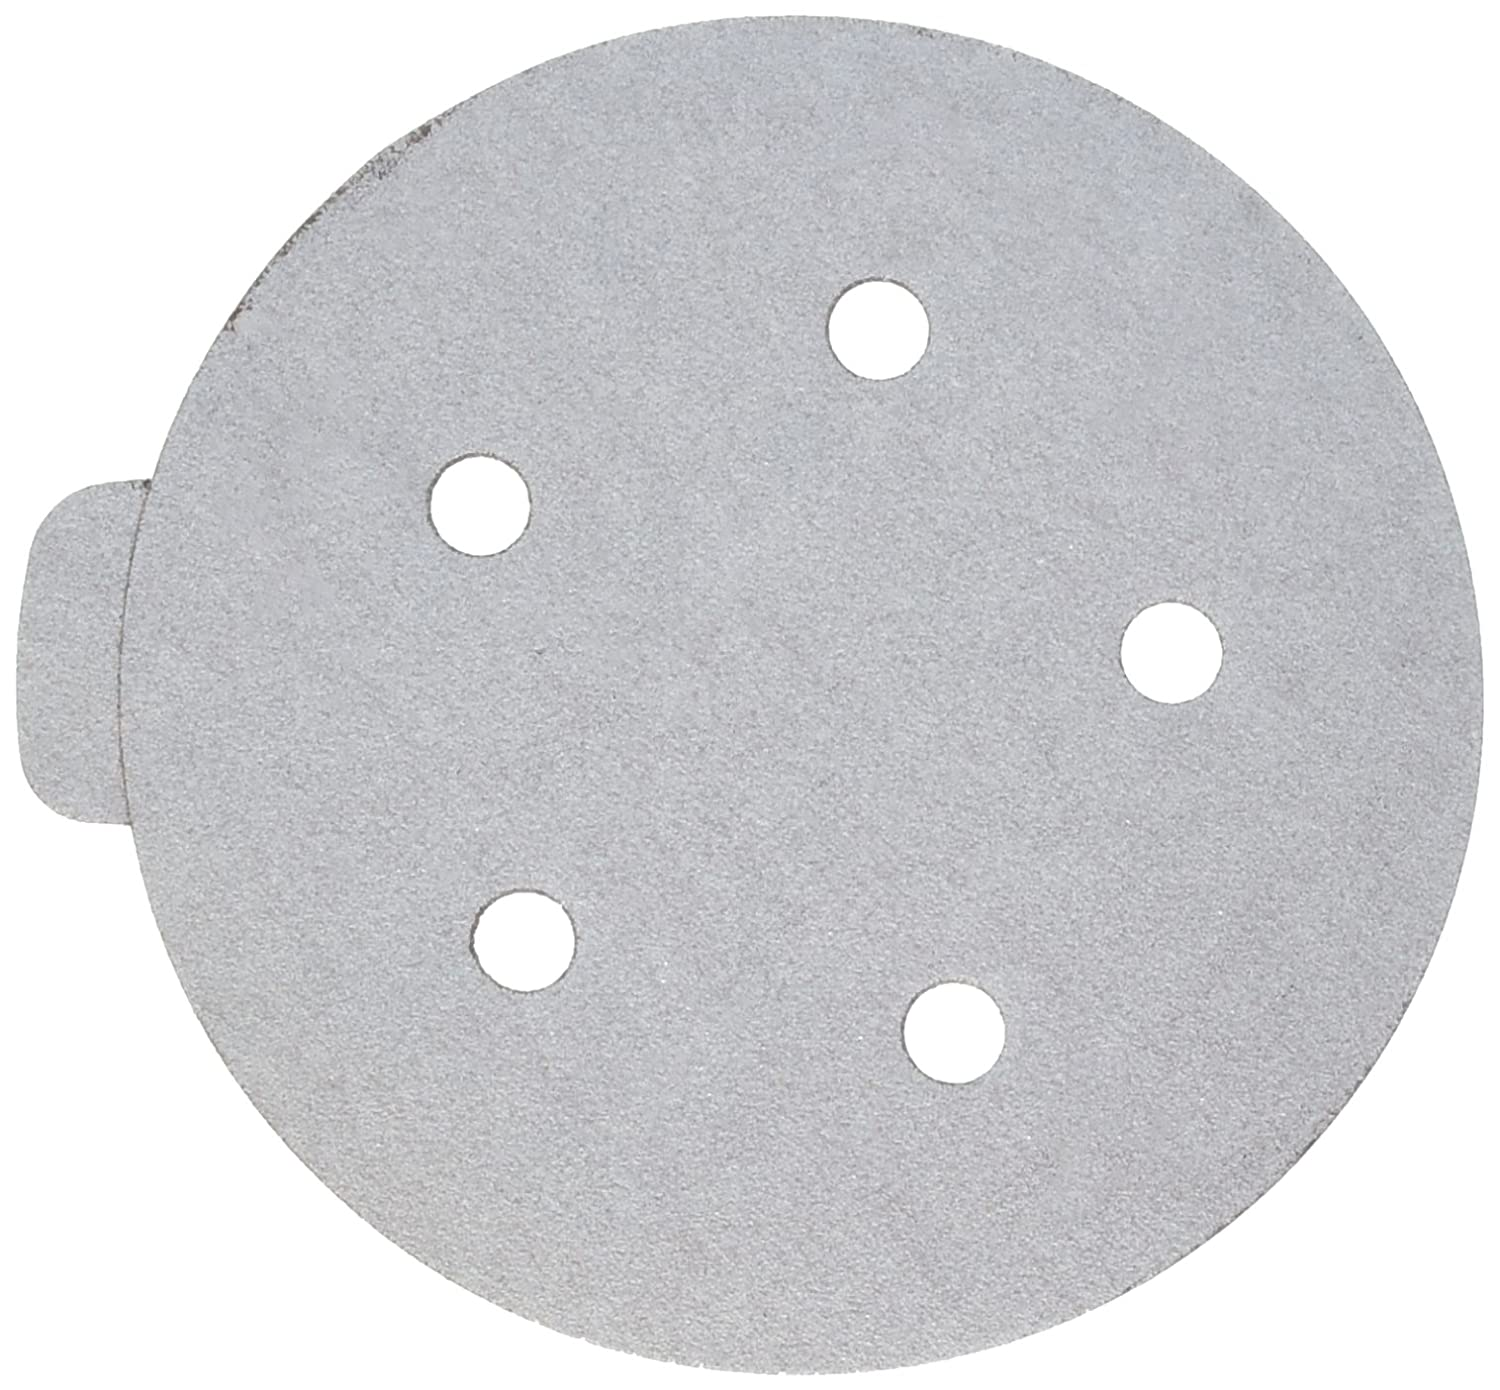 Sungold Abrasives 47409 5 Hole 150 Grit Psa Individually Lined Sticky Back Stearated Aluminum Oxide Discs 5 5